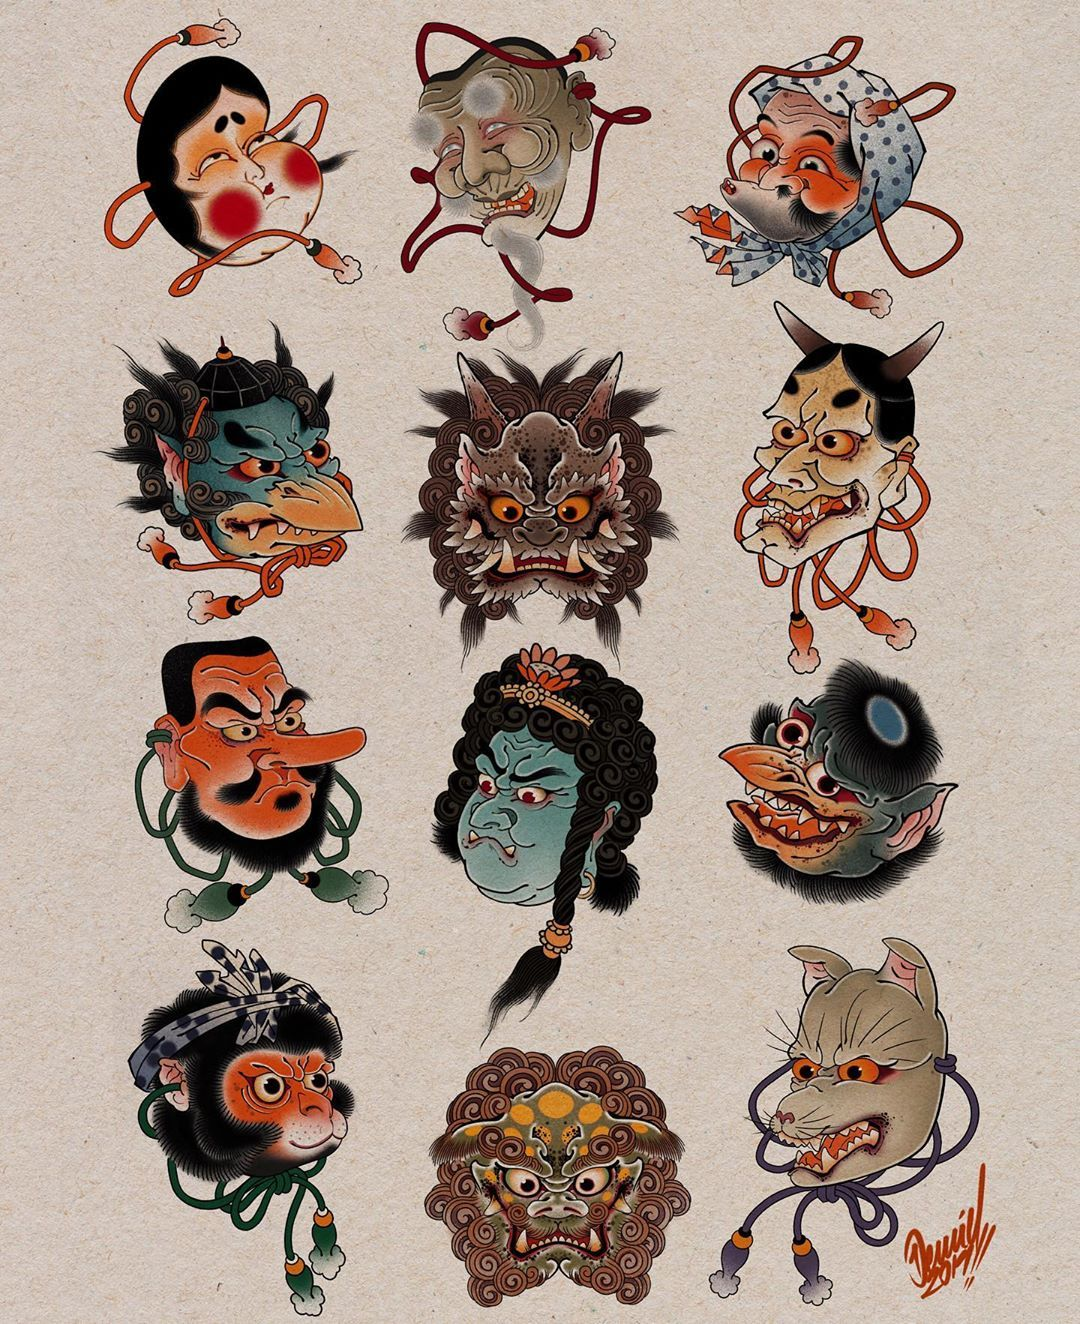 Ddpidildtds On Instagram Some Of My Favorite Mask All Available As A Tattoo Ja Japan Tattoo Design Traditional Japanese Tattoo Flash Japanese Mask Tattoo